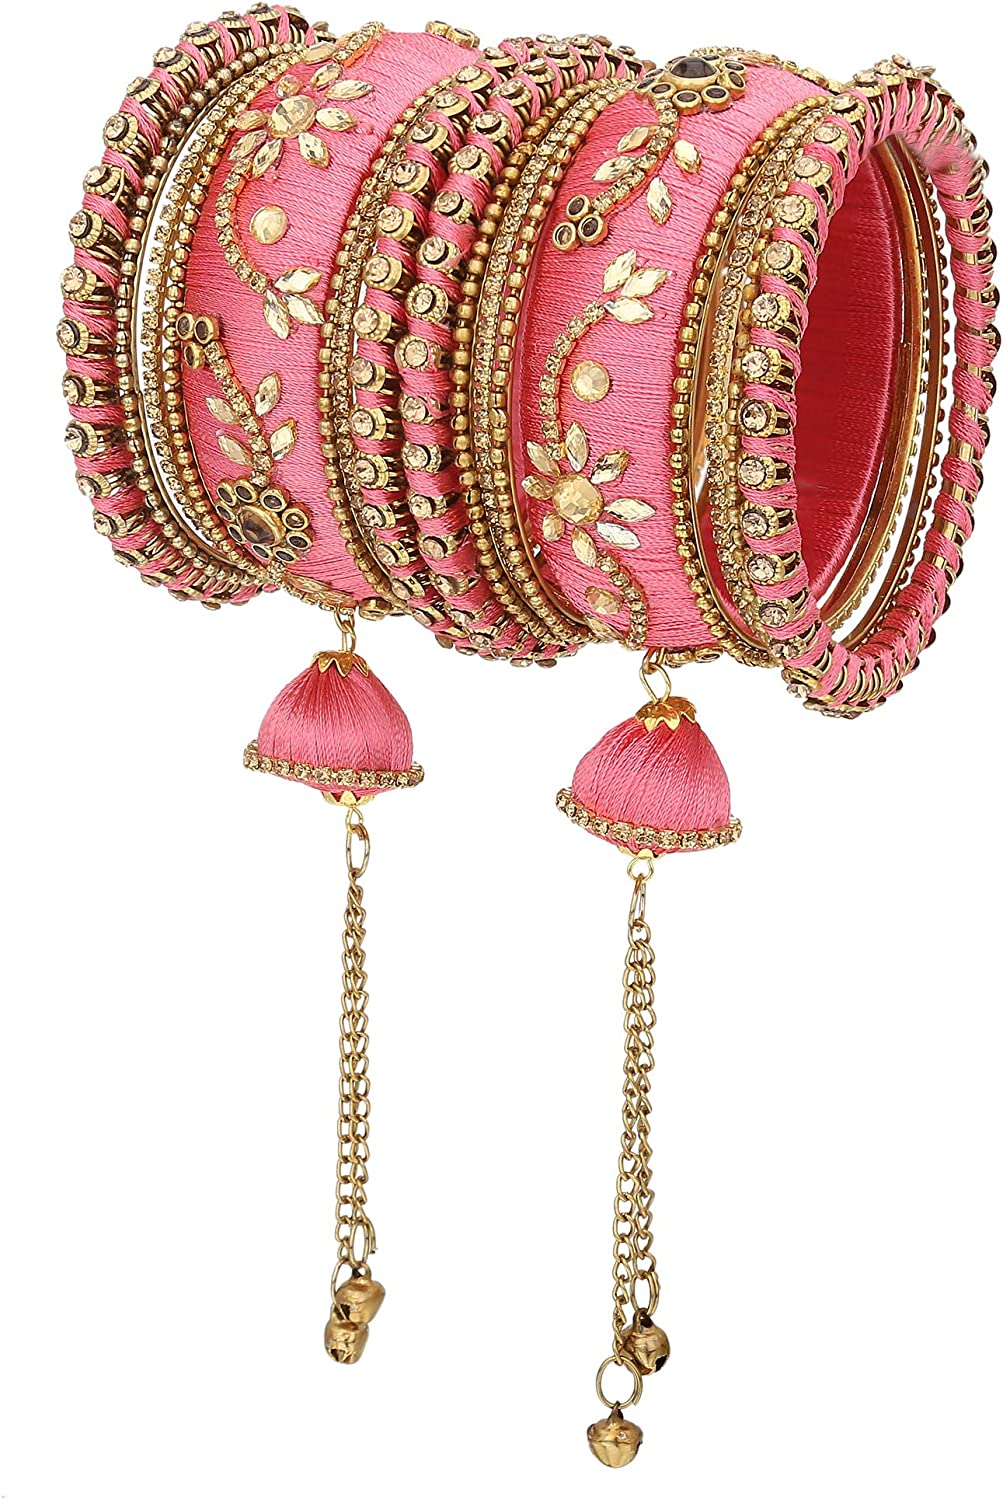 Bollywood fashion silky thready necklace and jhumki and Bangles 2-4